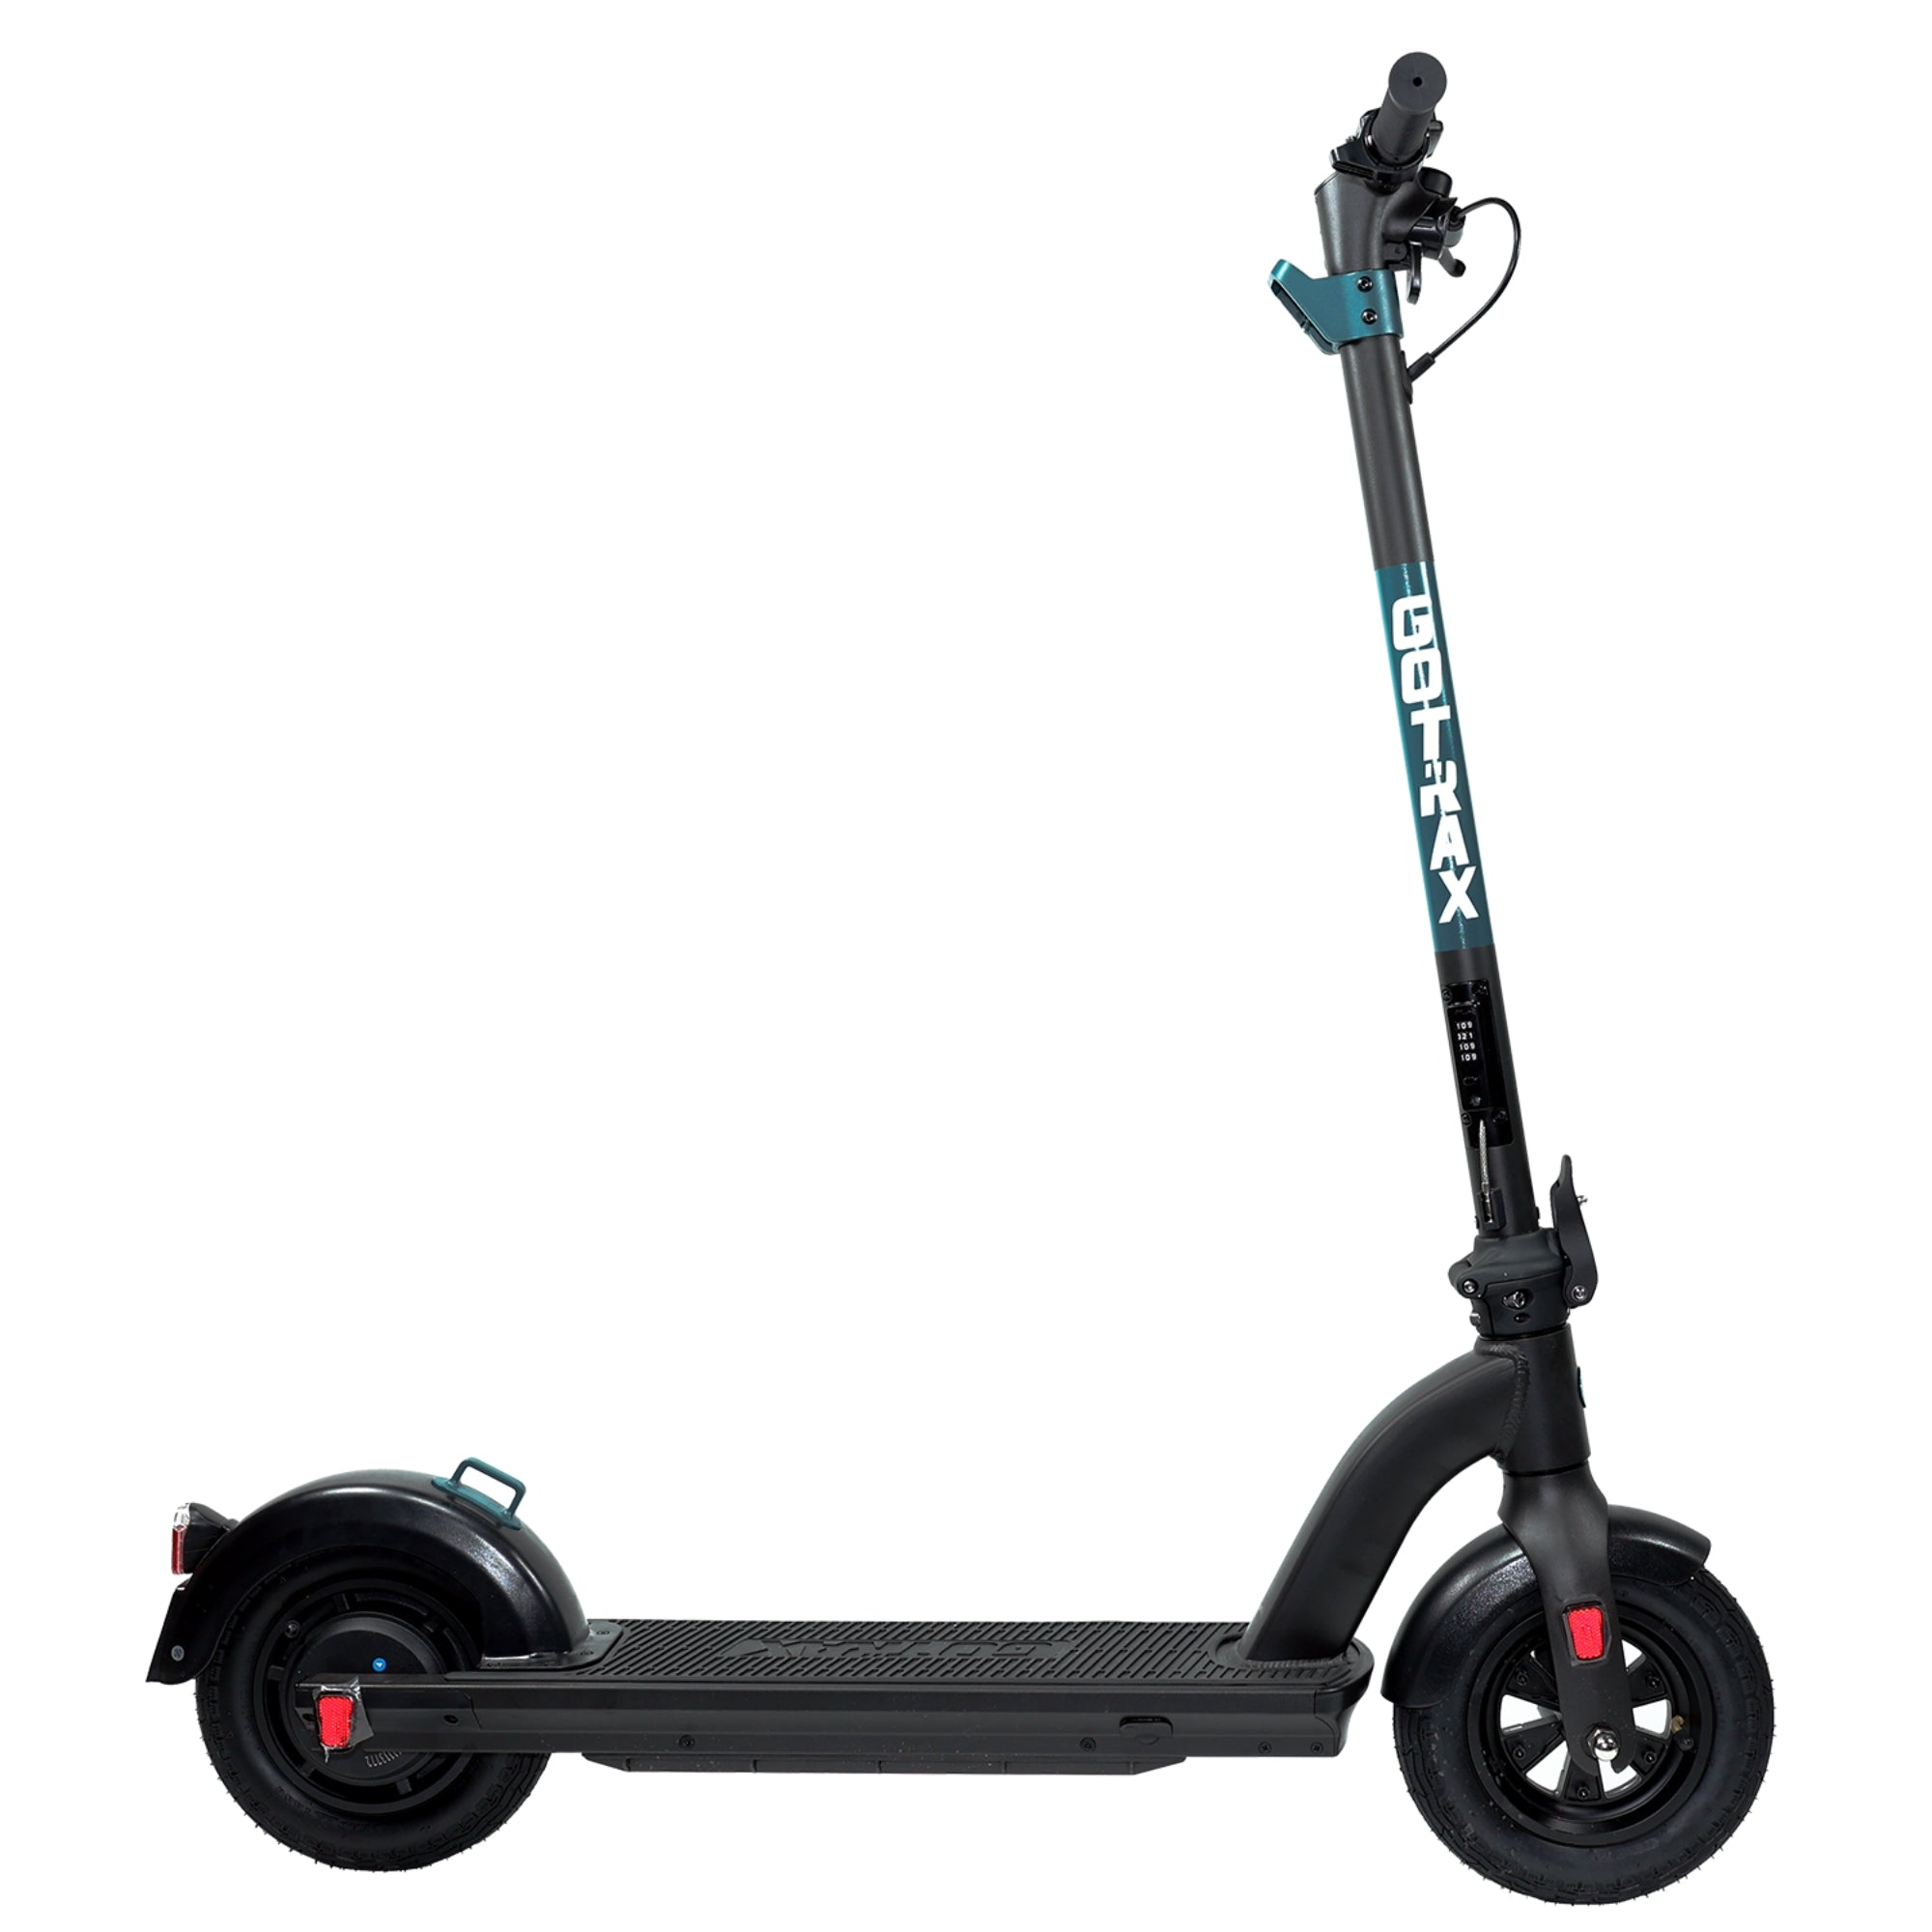 Black GMAX Ultra electric scooter main image 2